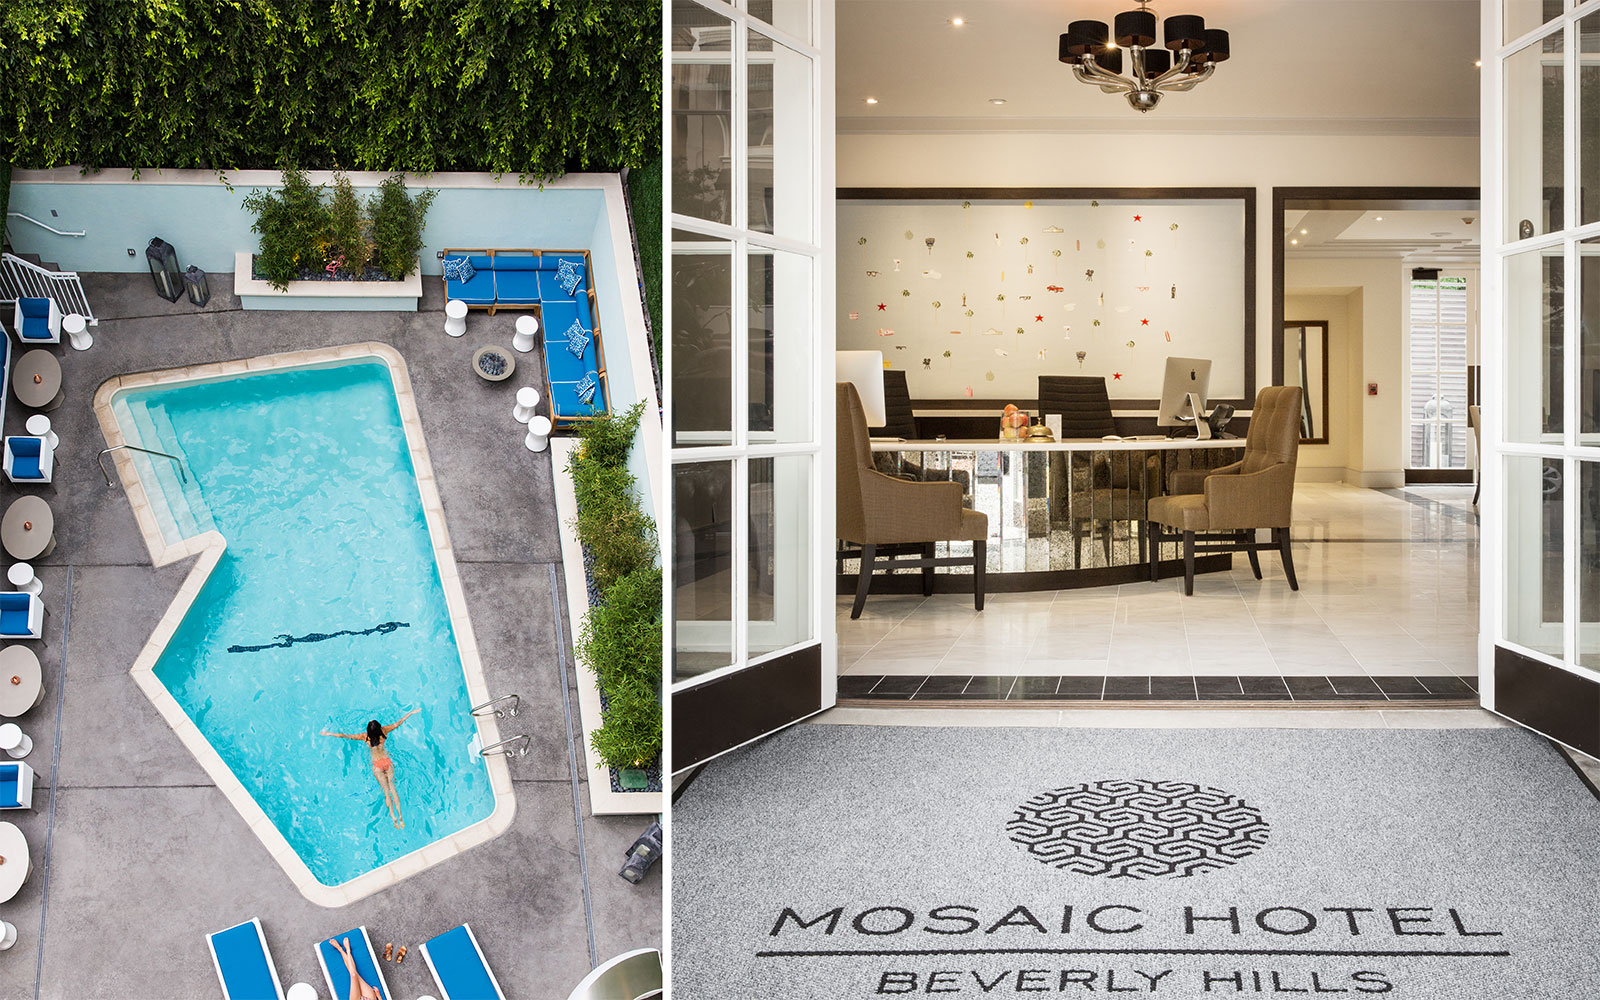 Beverly Hills's Mosaic Hotel Completes Renovation